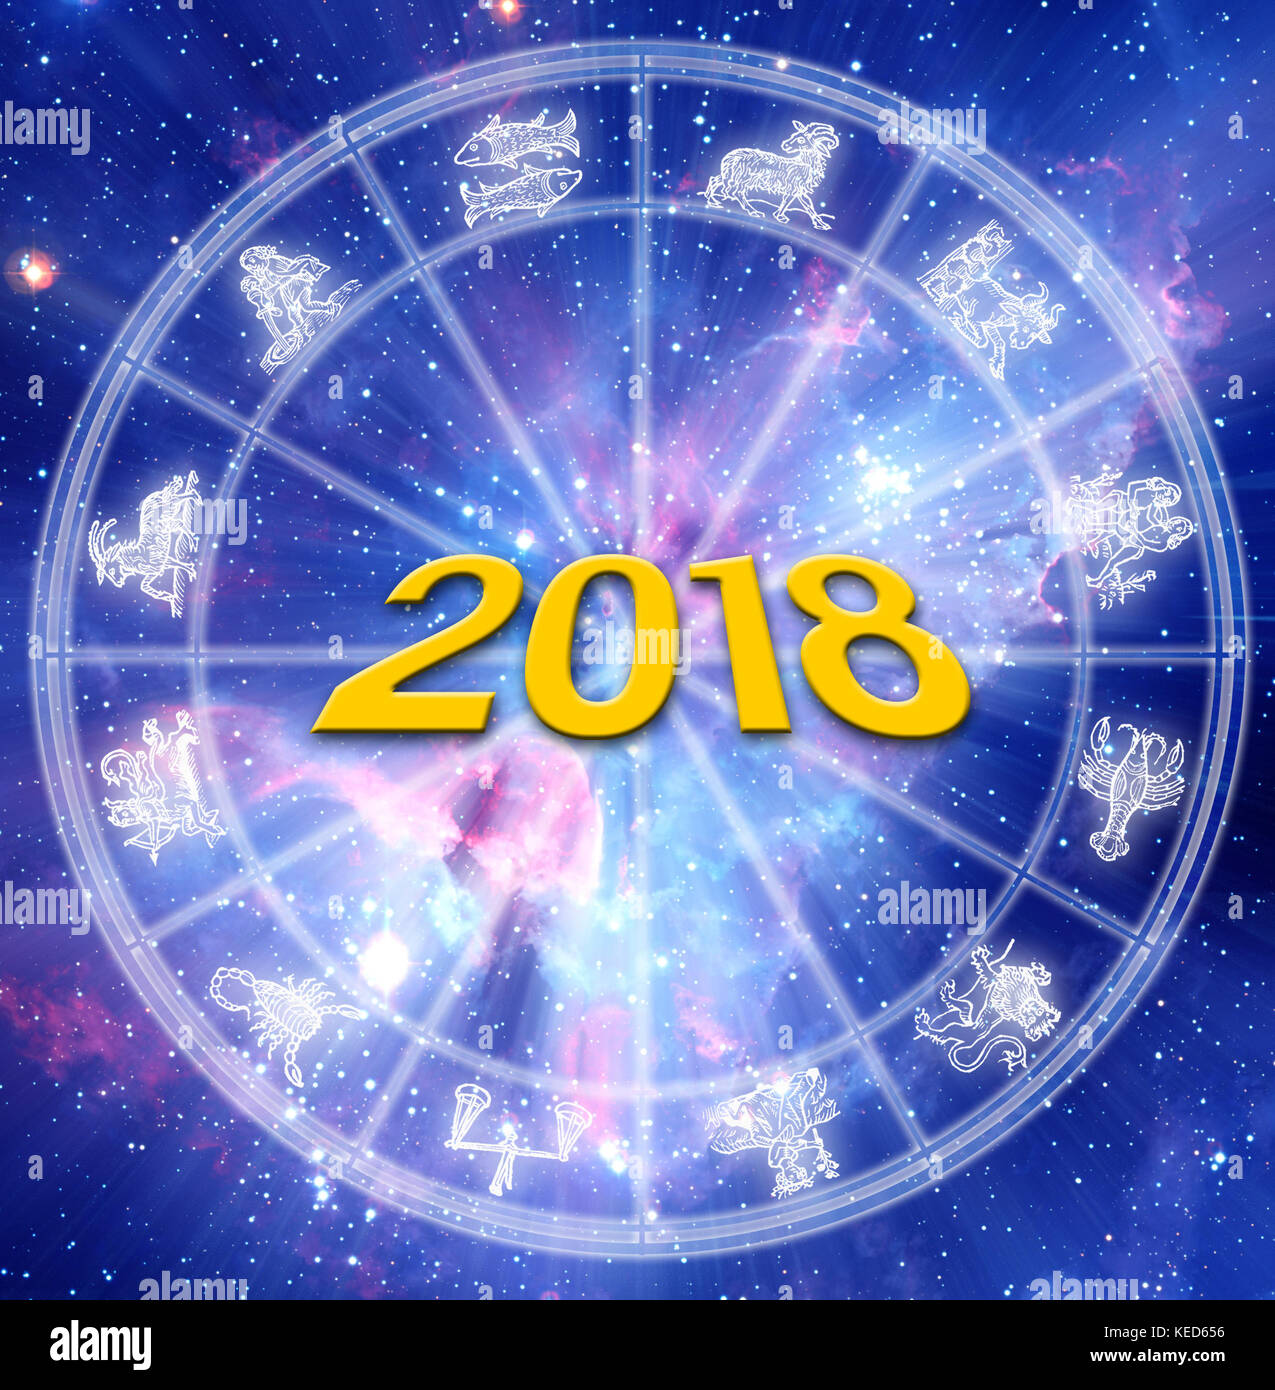 Zodiac prediction for 2018 stock photos zodiac prediction for astrology chart with zodiac signs and 2018 new year concept stock image nvjuhfo Image collections